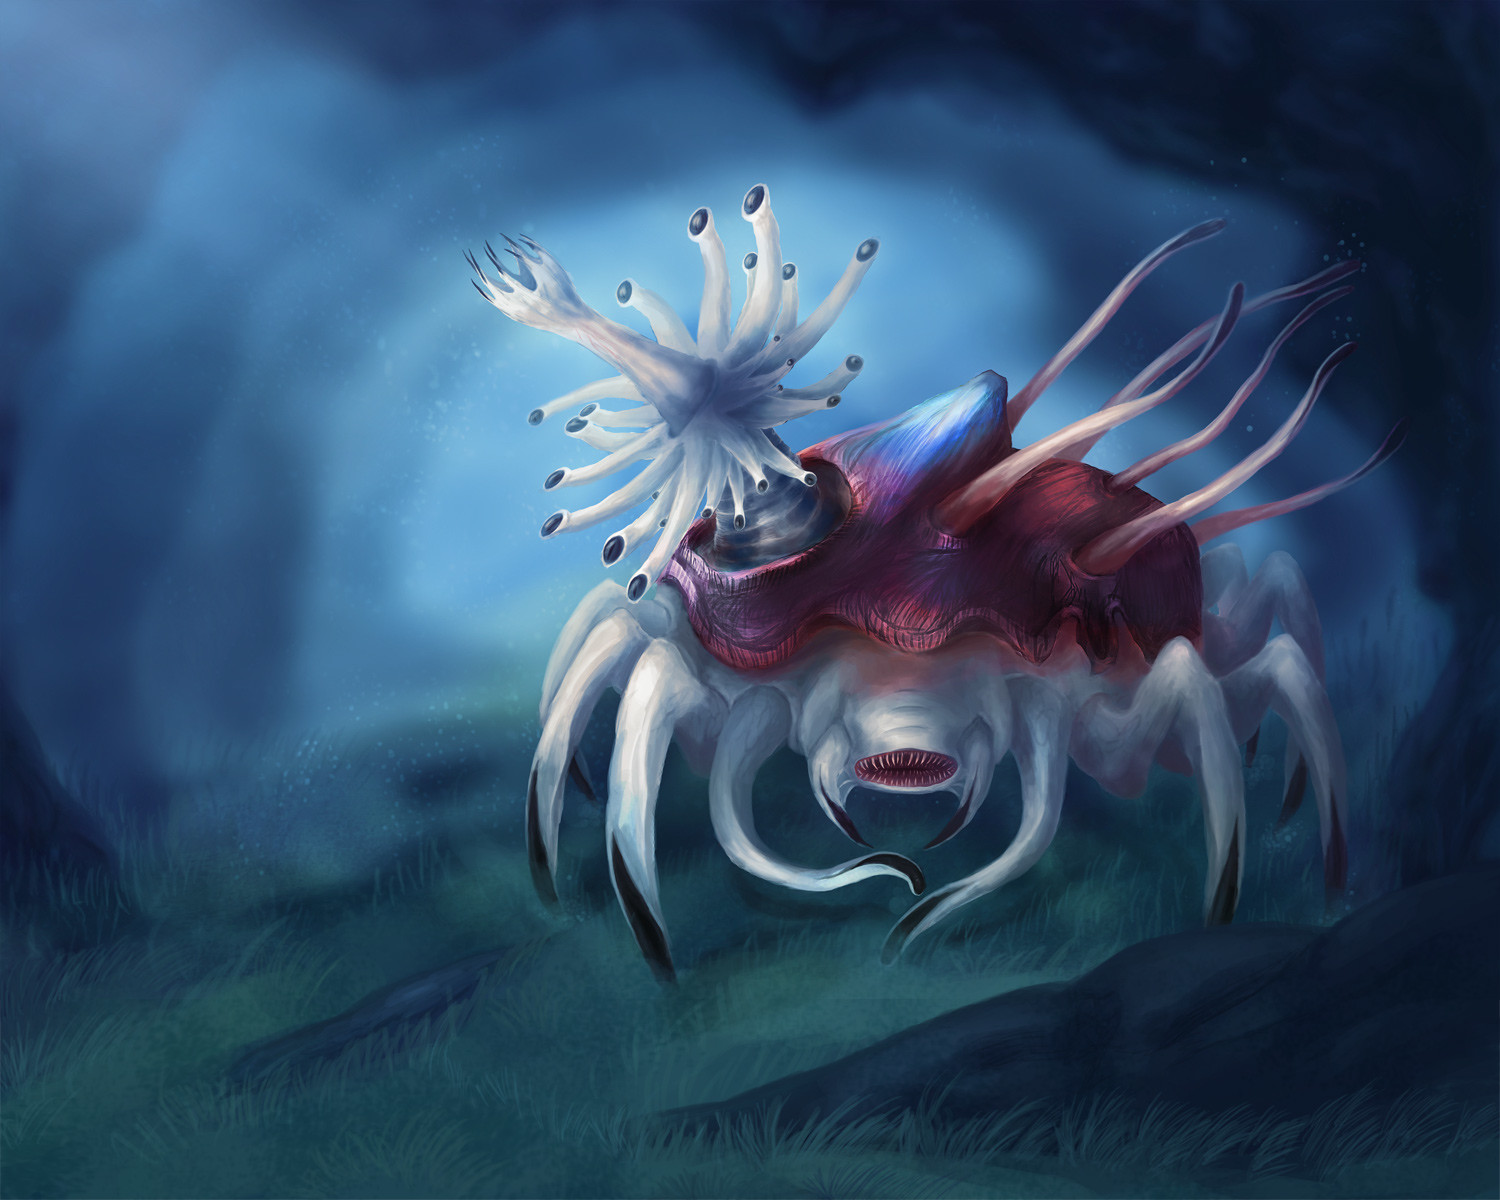 Orm irian pale sea devil by catharinawendland